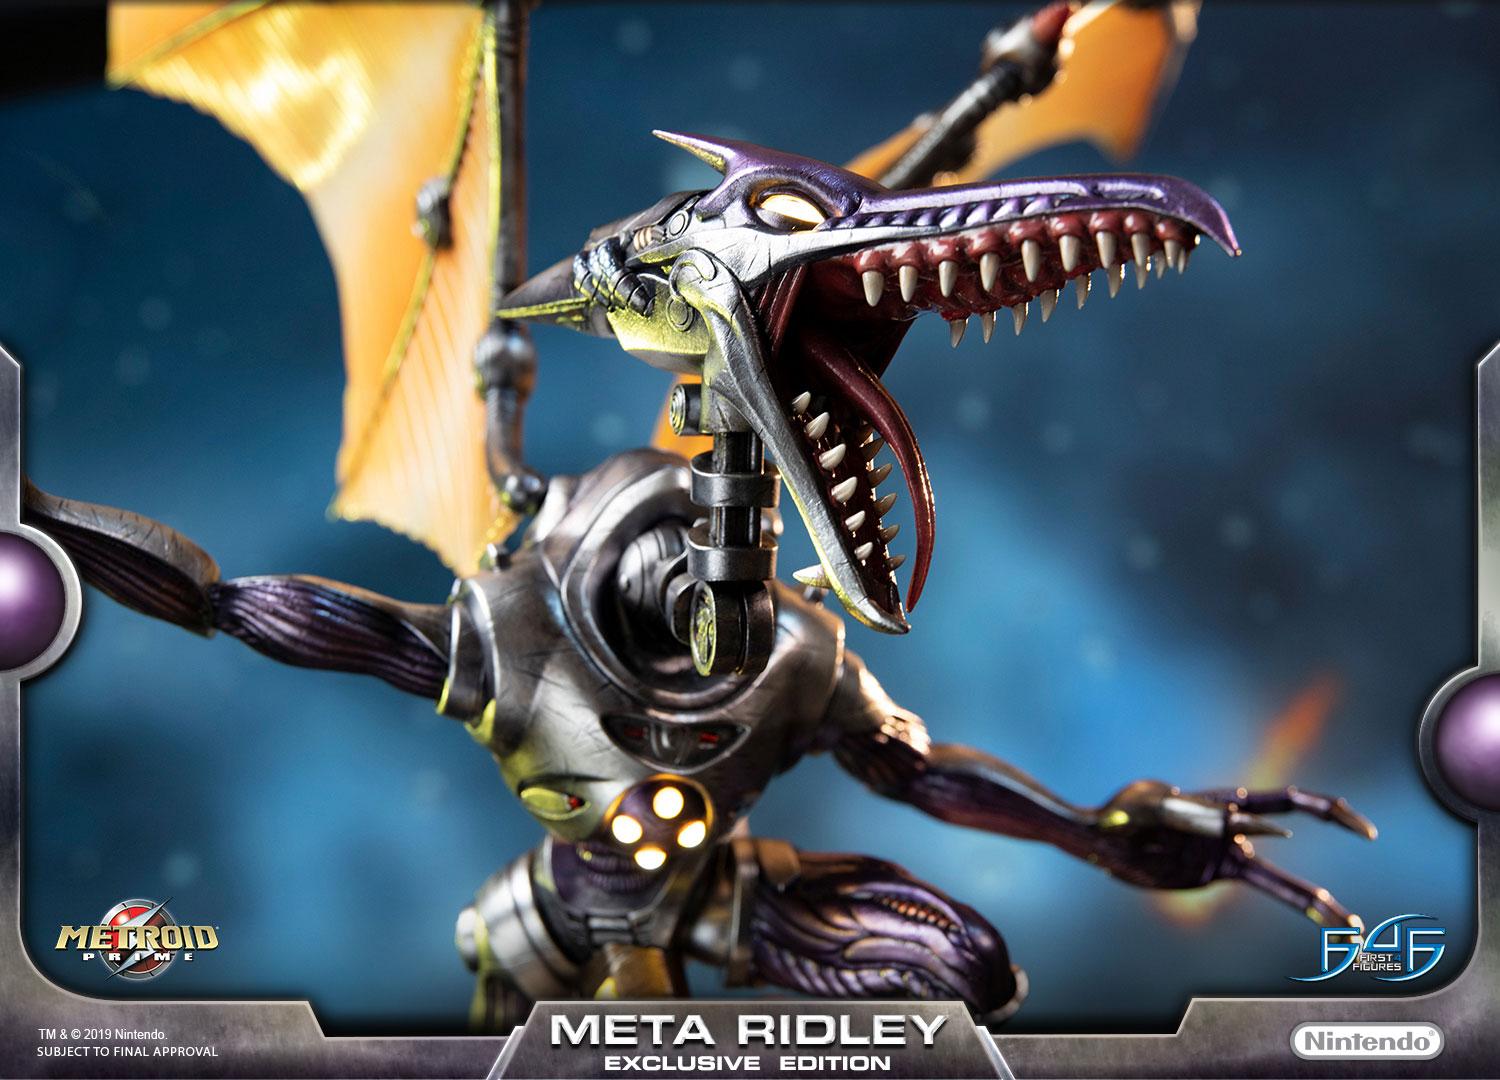 Meta Ridley (Exclusive Edition)